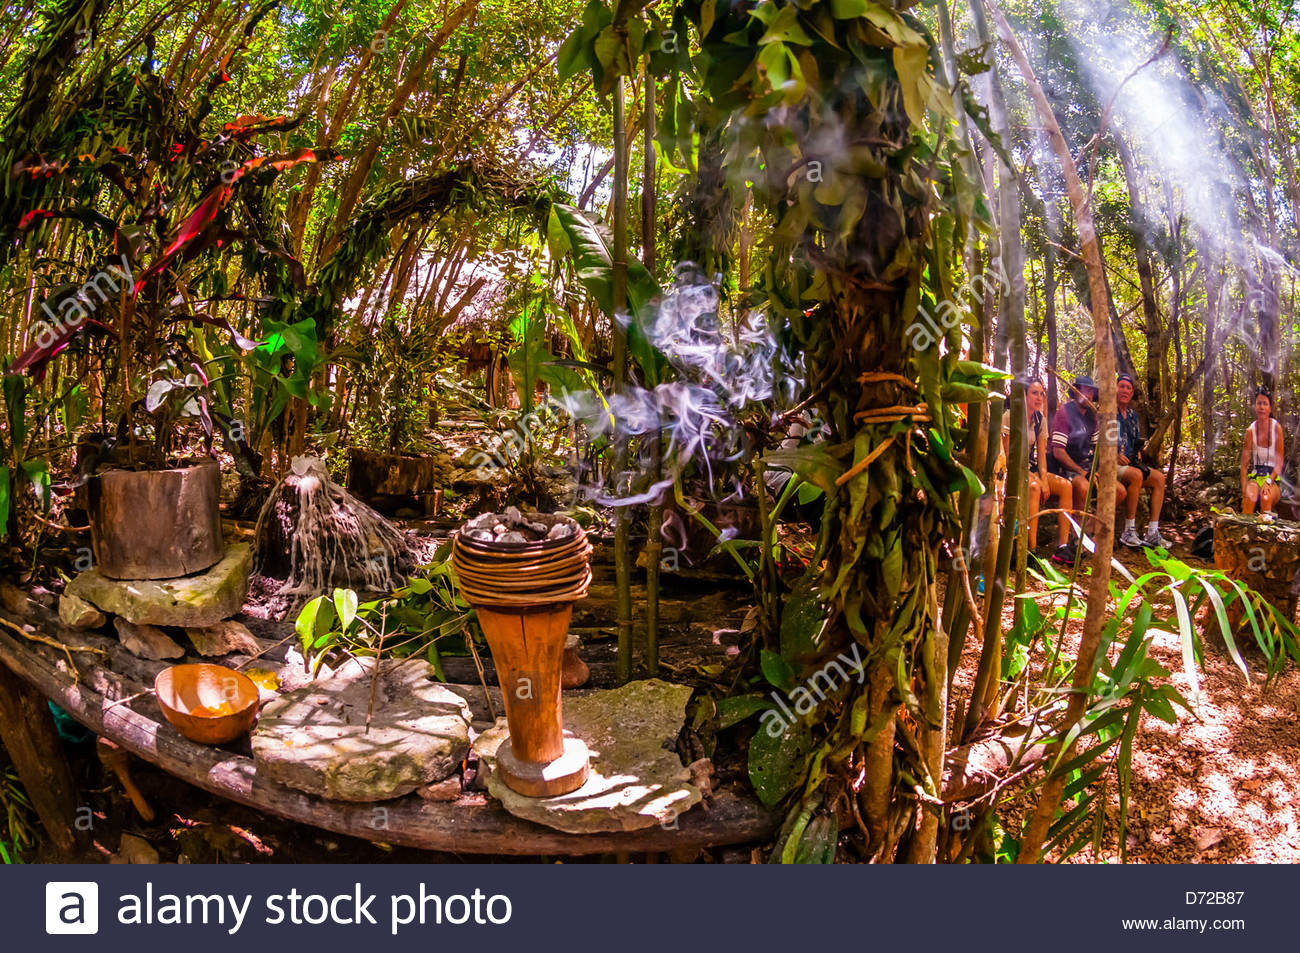 A Mayan shaman performing a purification ceremony in the jungle, near Riviera Maya, Mexico - Stock Image